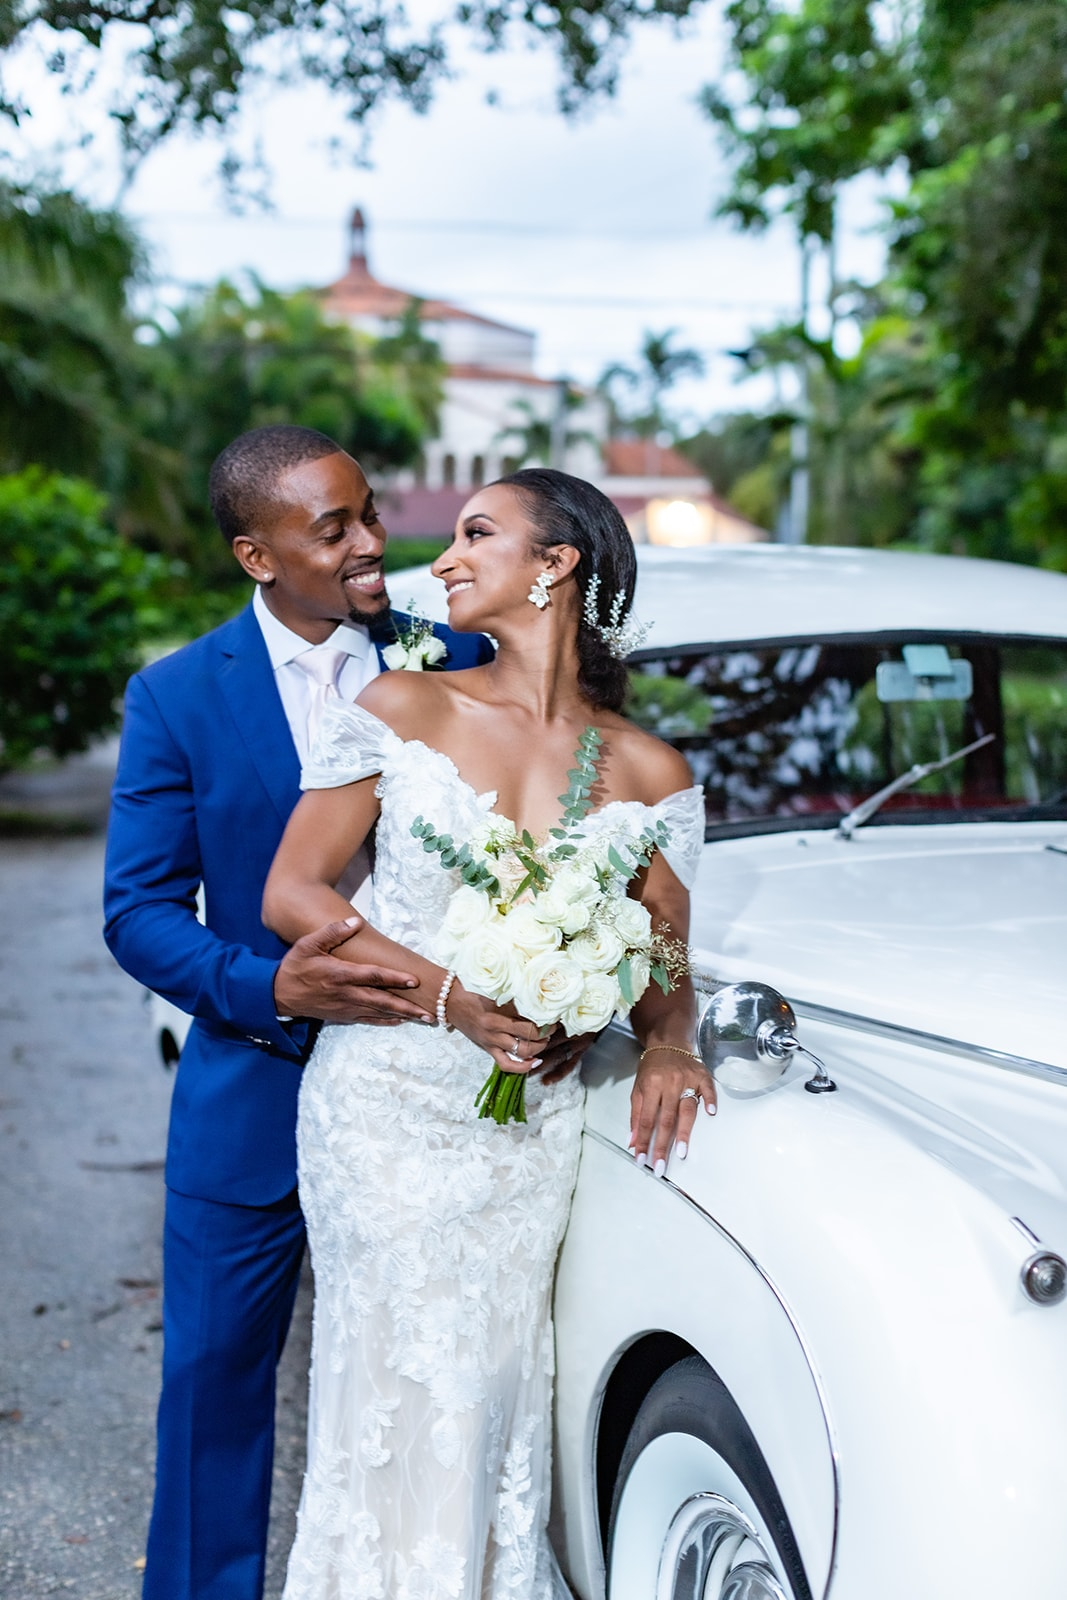 Kimberley & Brandon's Romantic Wedding at The Grove Sanctuary in Miami, Wedding Planning and Design by Designs by Nishy for Caribbean wedding blog Adriana Weddings